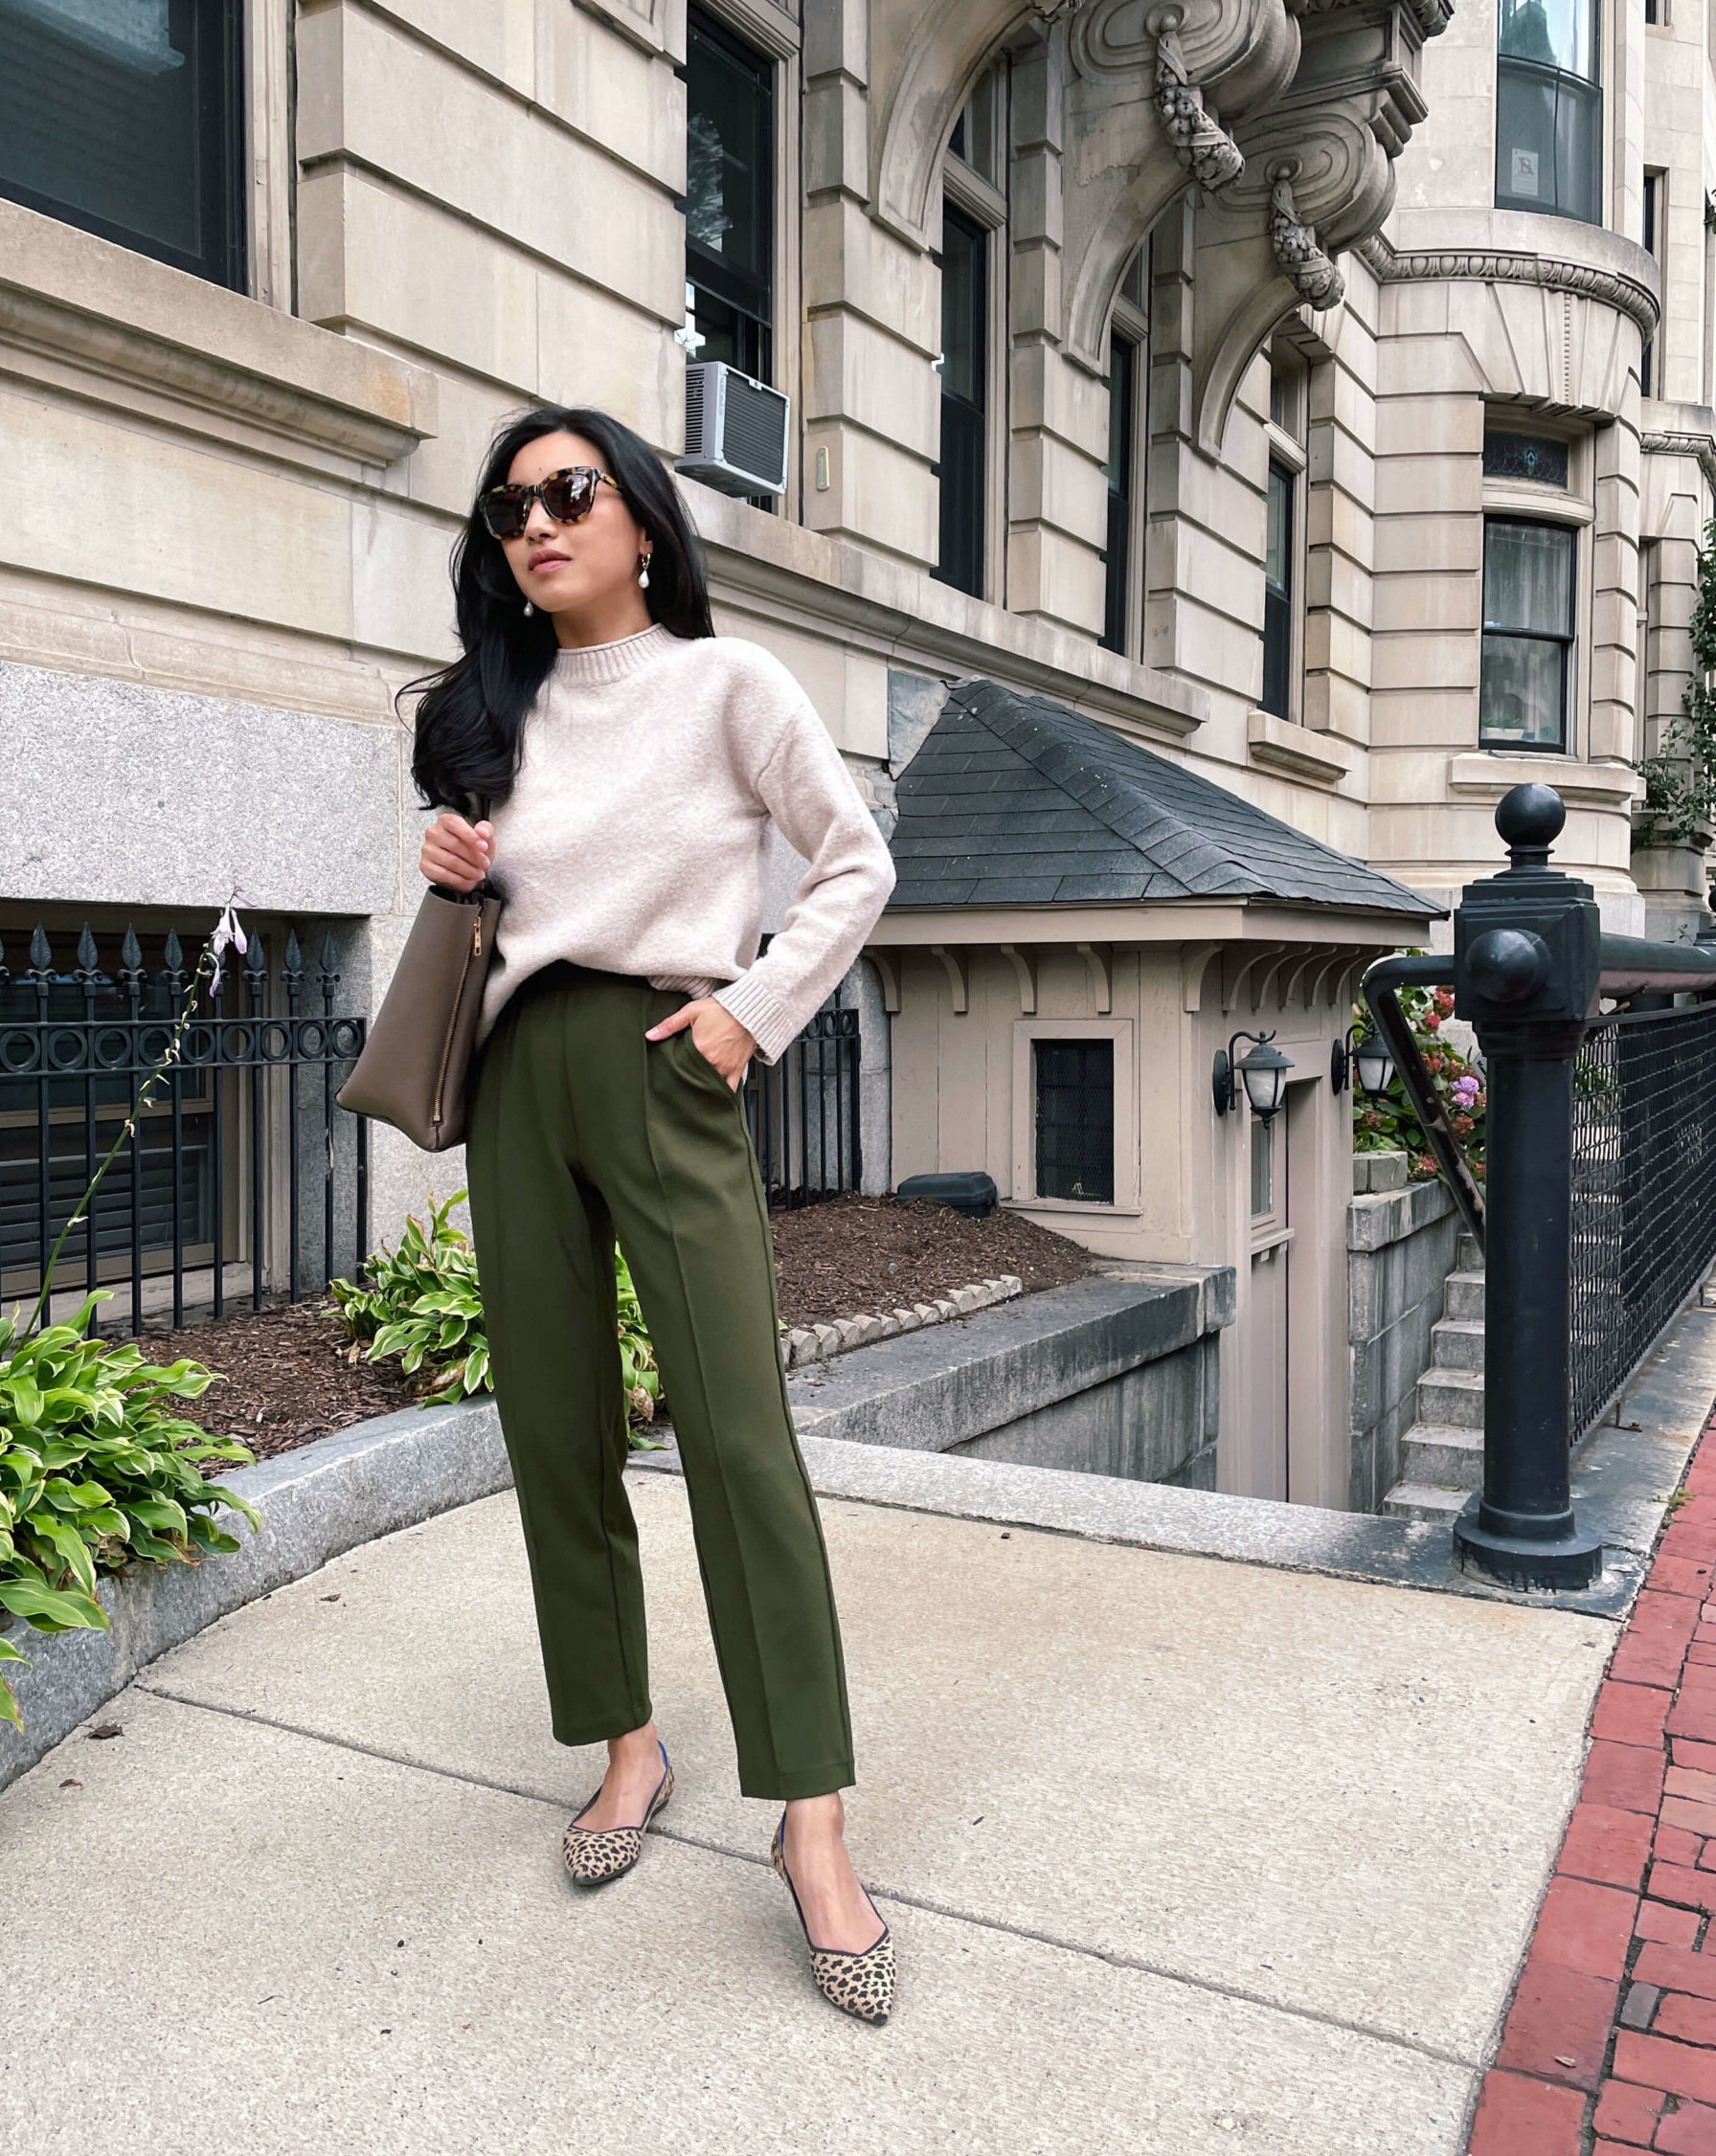 rothys point flats review petite